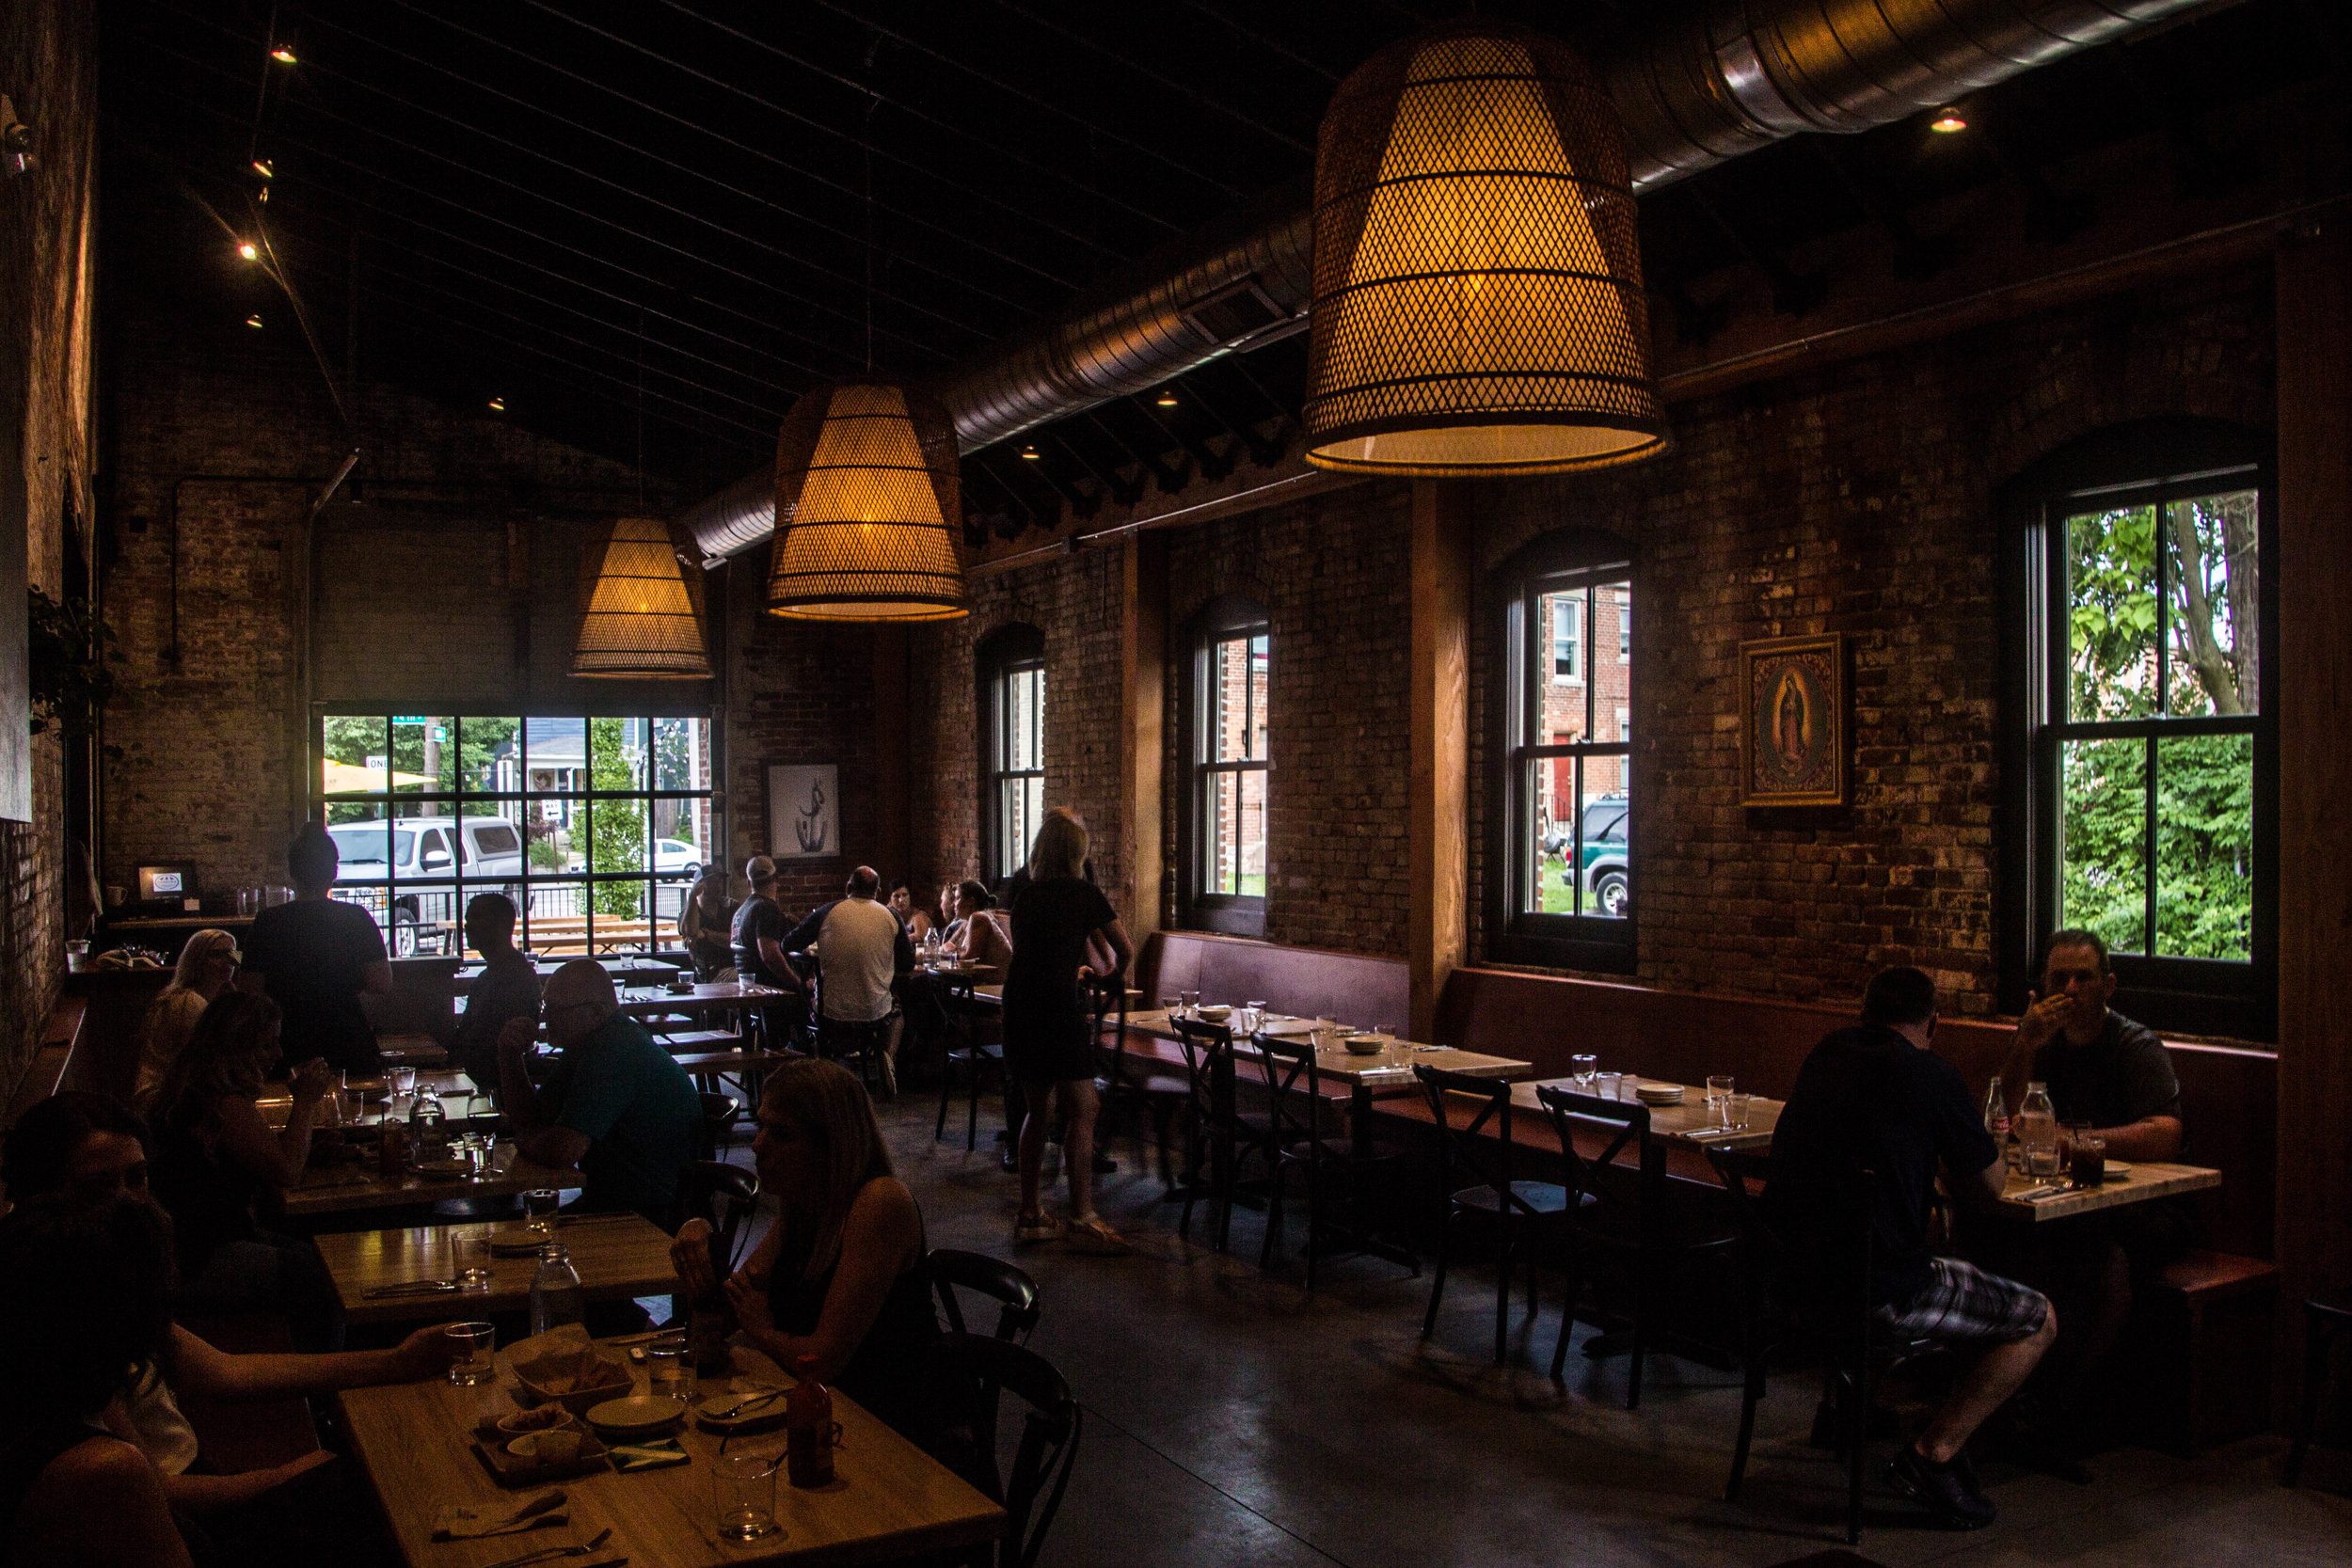 cosecha-columbus-restaurants-4.jpg